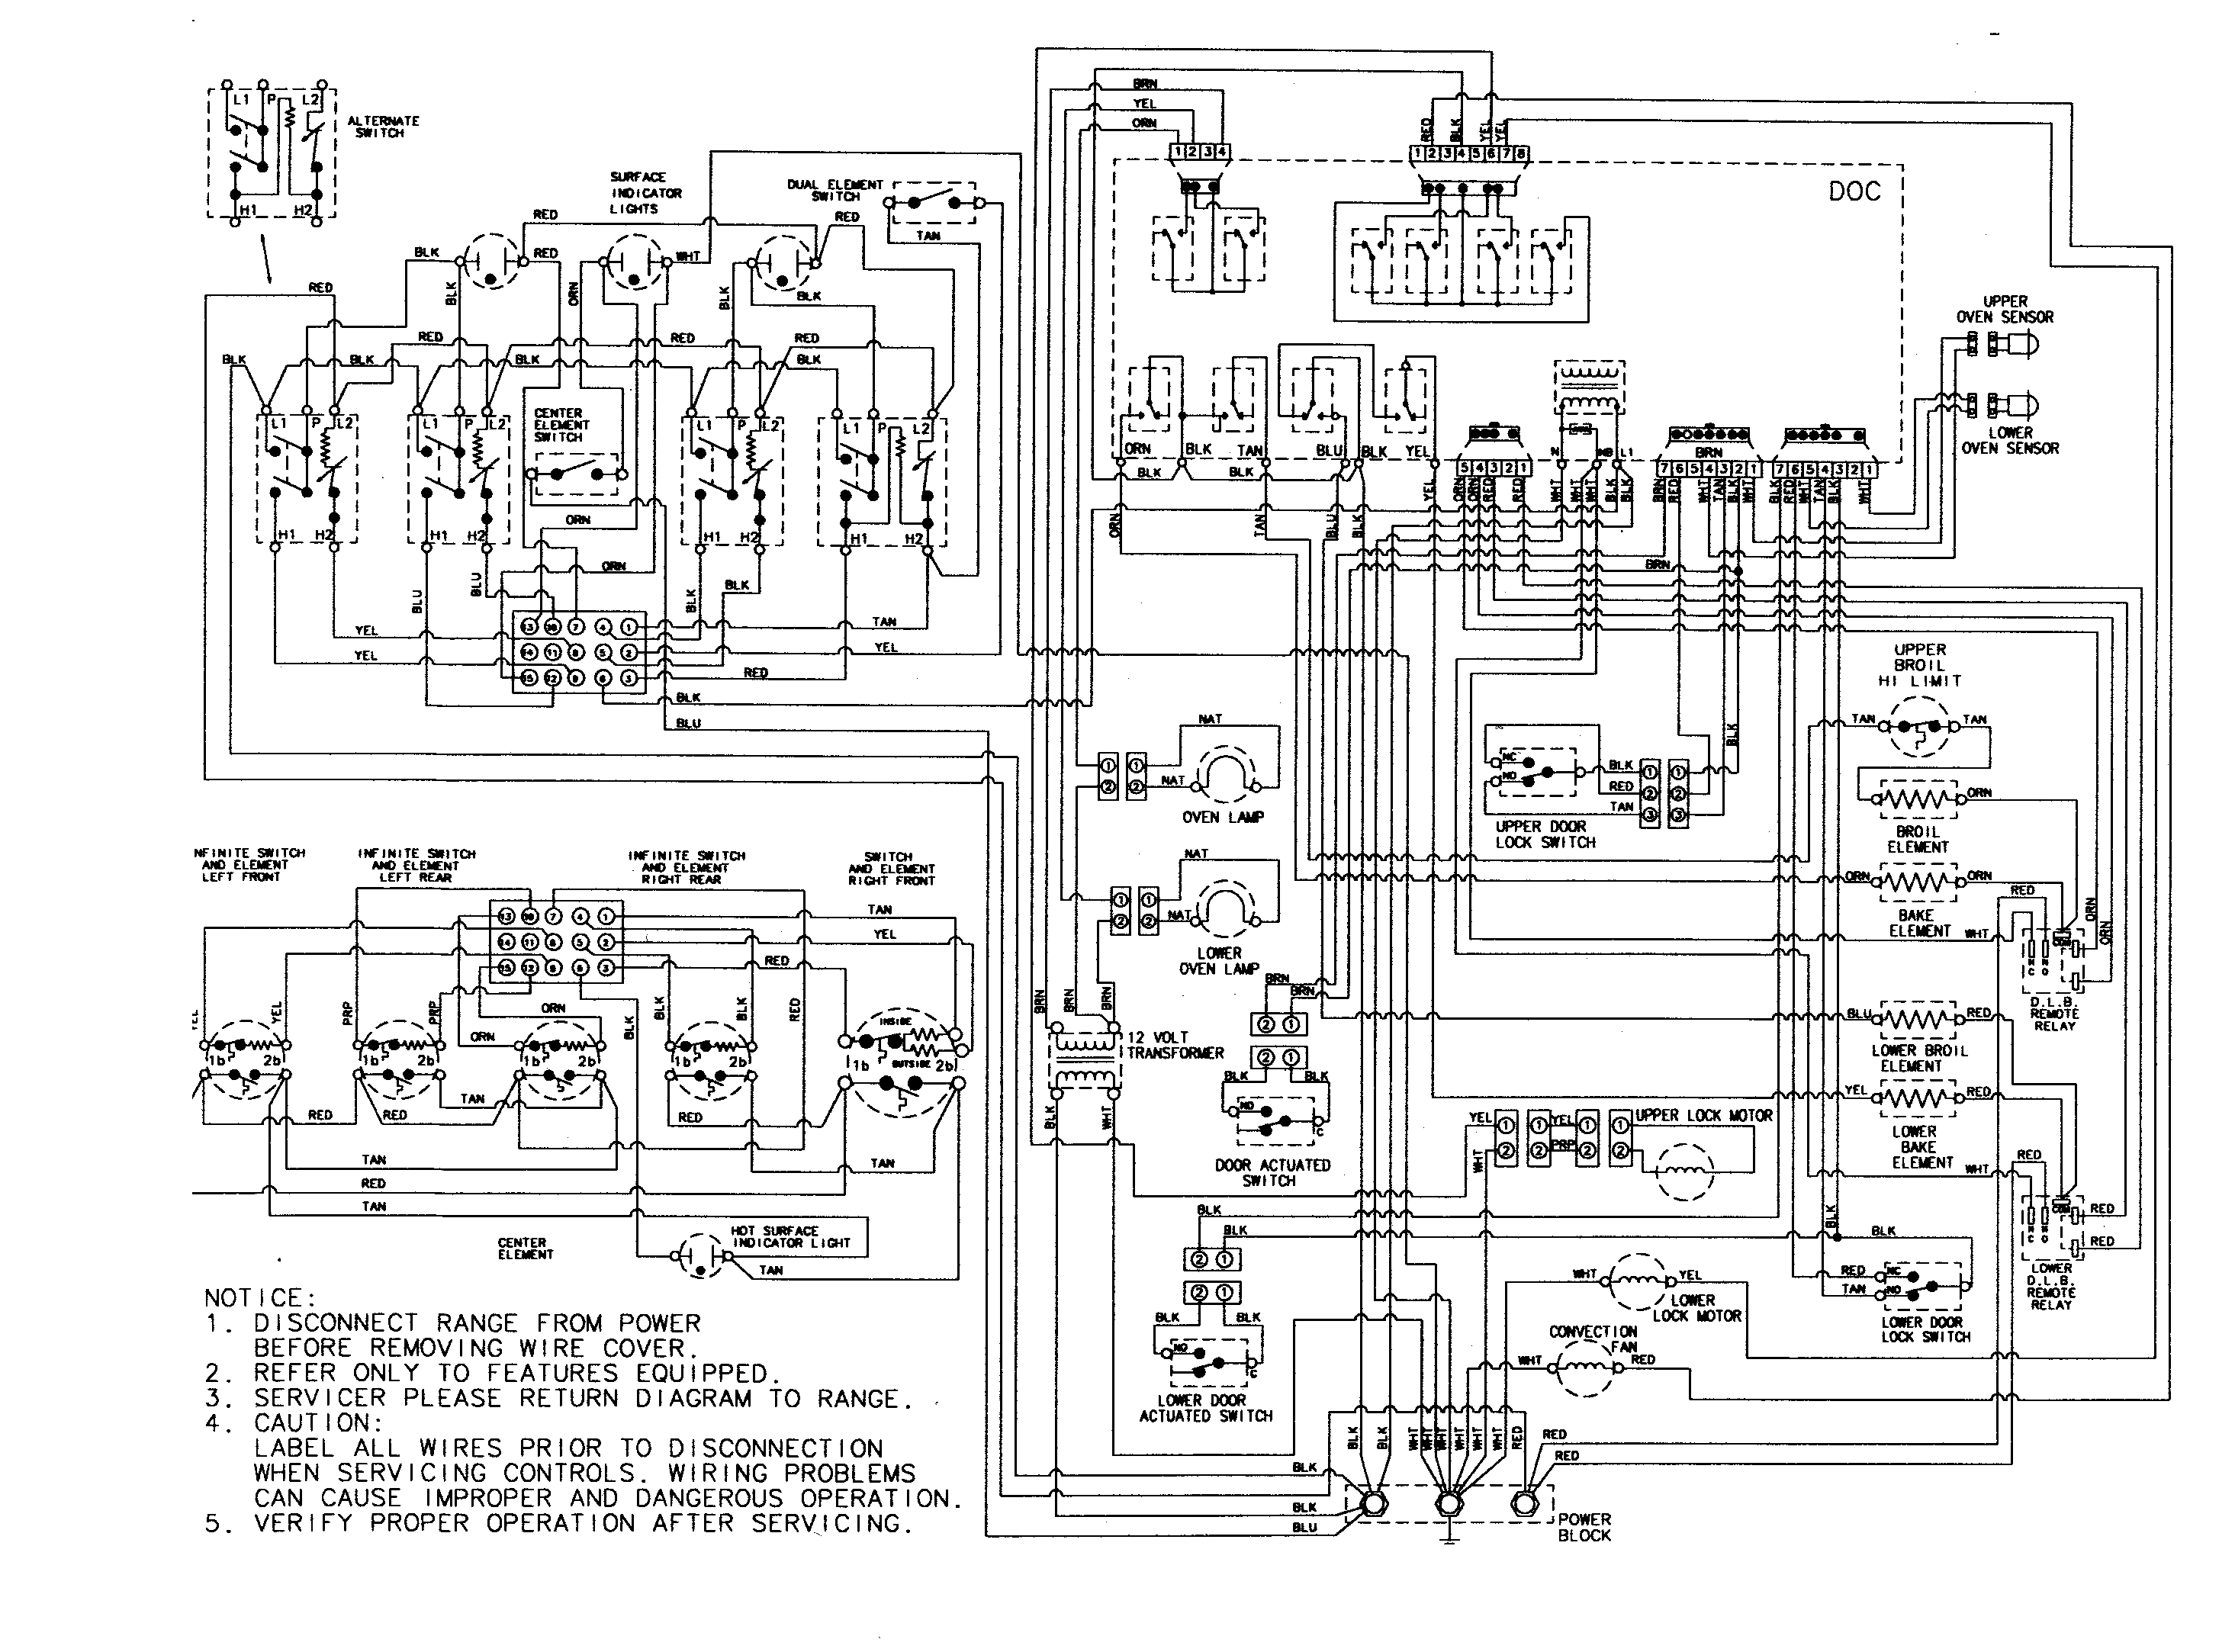 Maytag Electric Dryer Wiring Diagram. Maytag Electric Range Parts ...